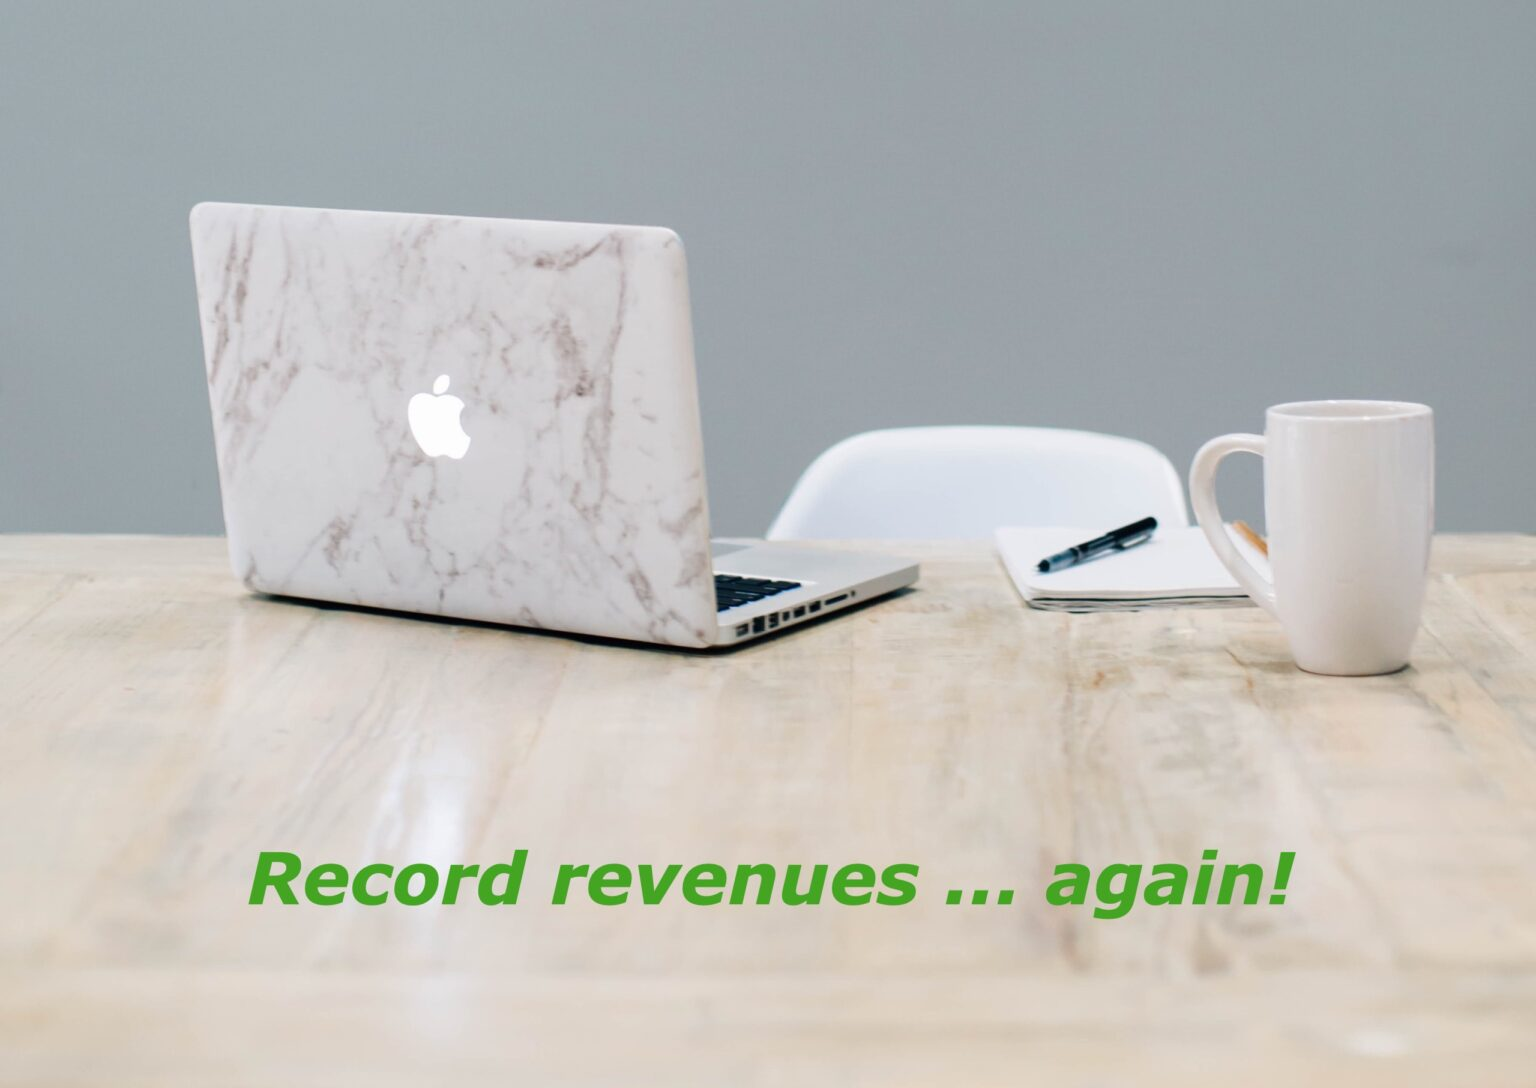 Apple Q4 2020 earnings: Mac sales (and services) drove revenues to record highs last quarter.